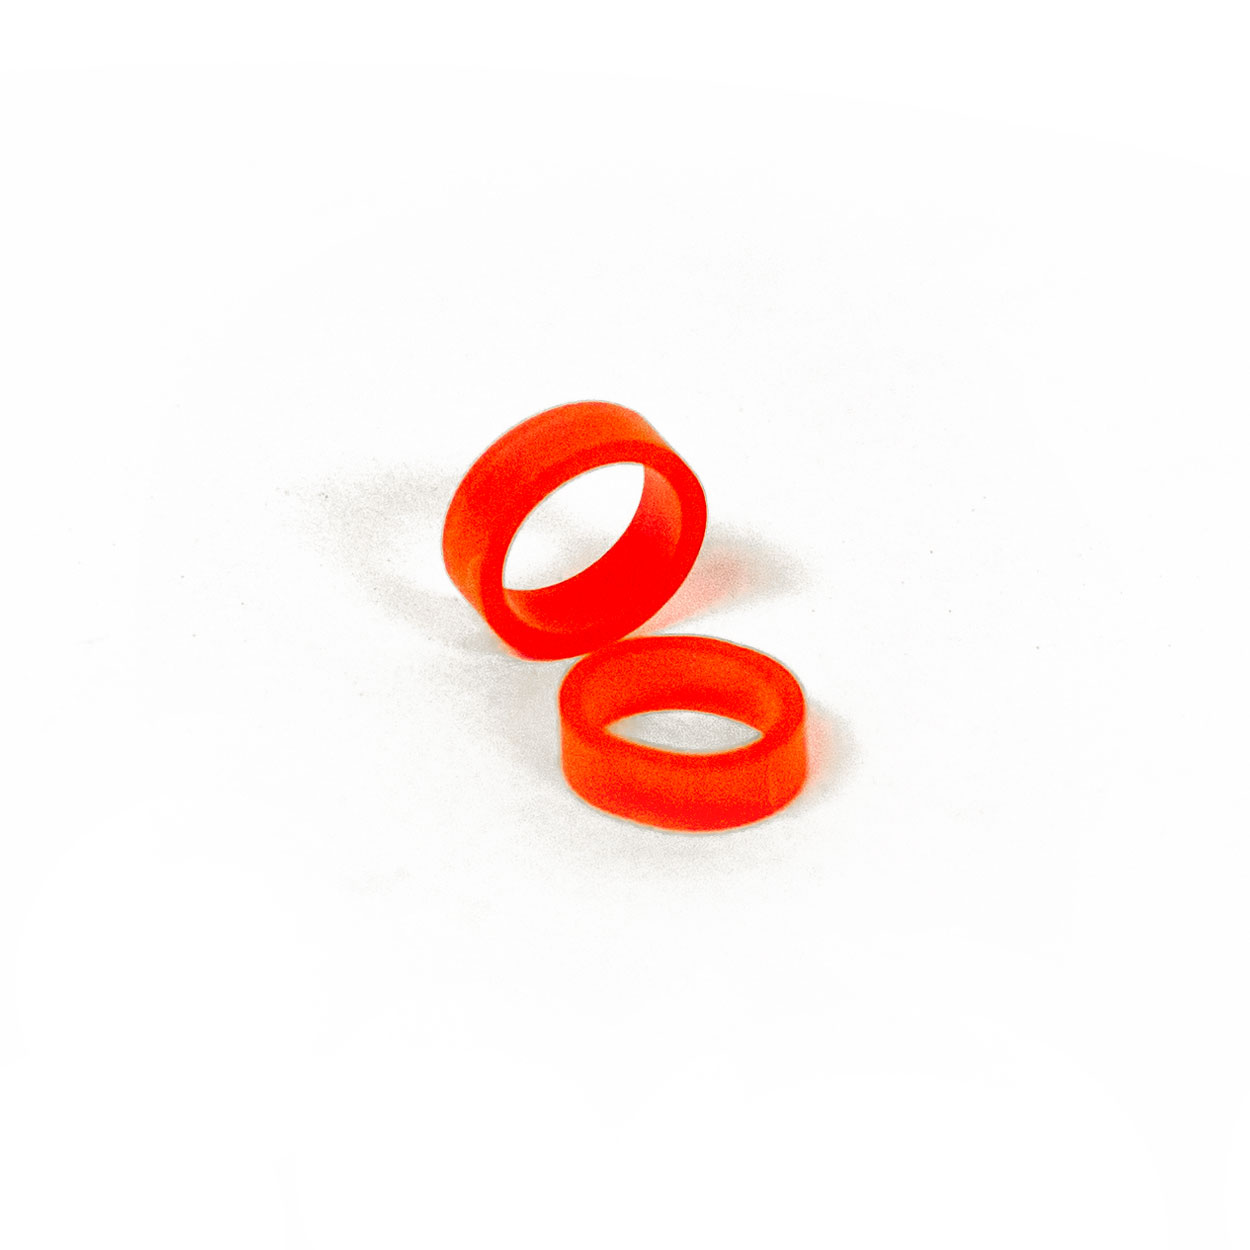 Band of Rebels - elastic RED silicon rubber band for tattoo cartridges - REBEL